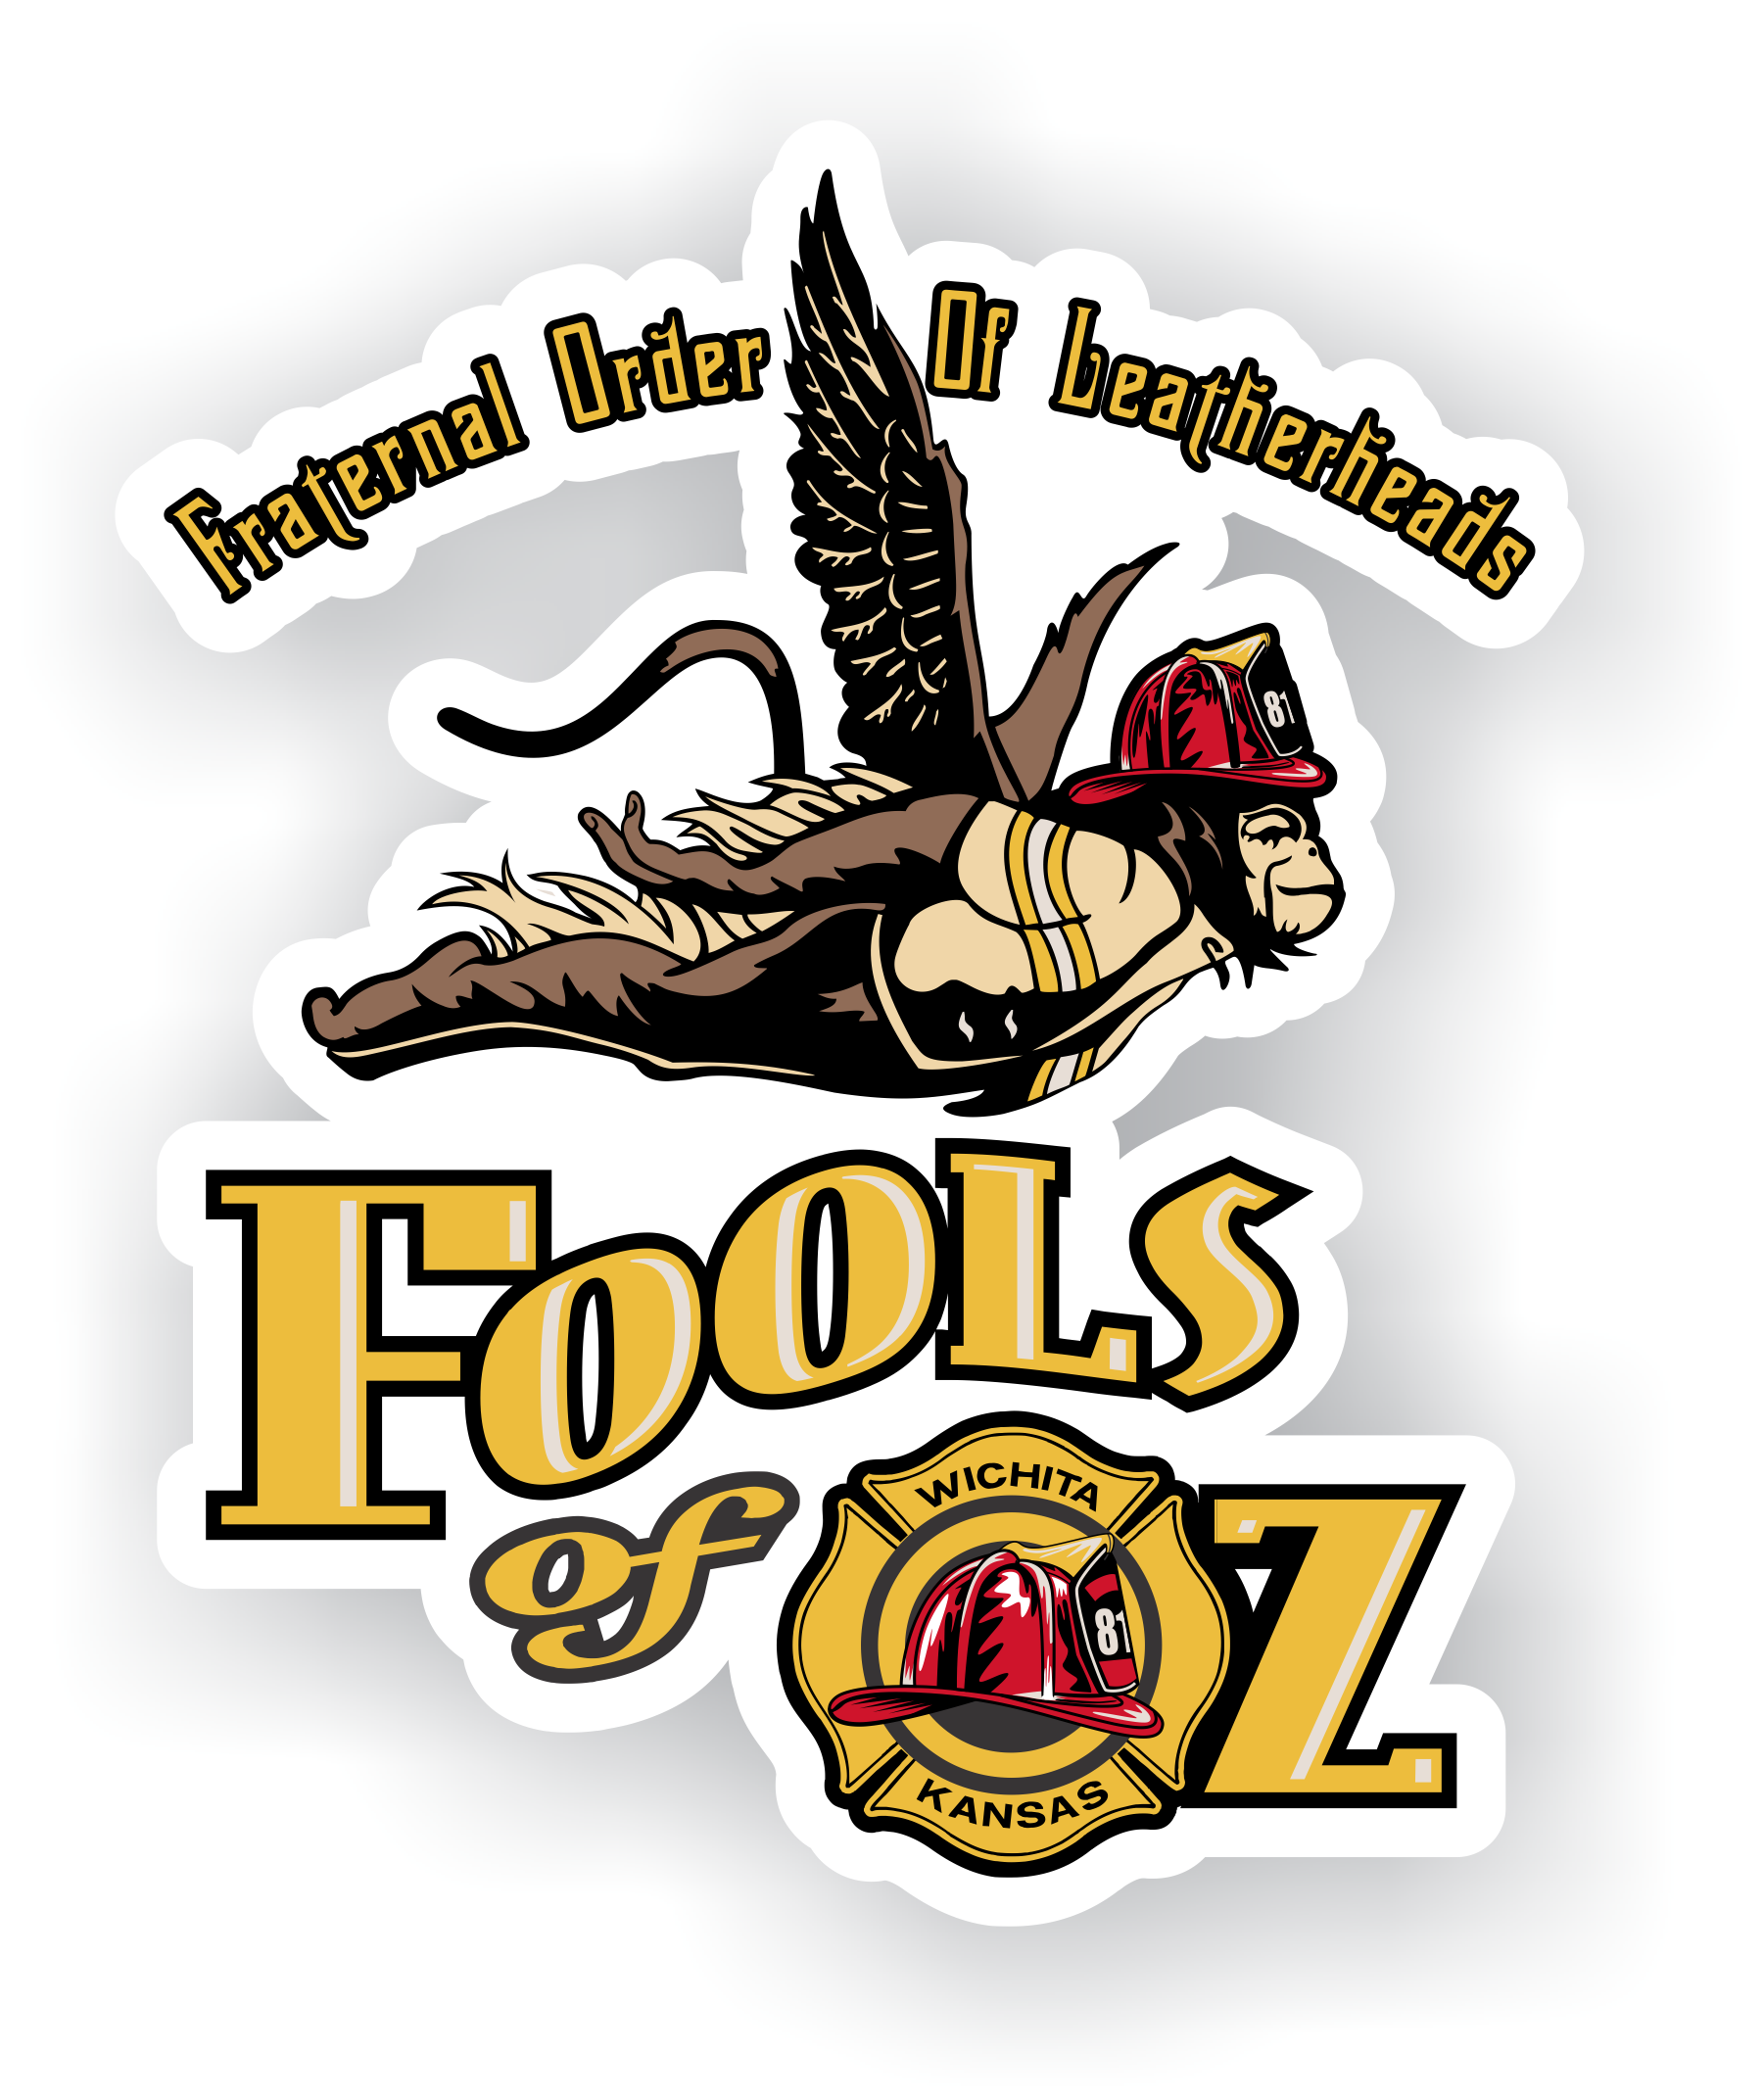 Custom stickers printed for fools of oz out of wichita ks by bomberodesigns com